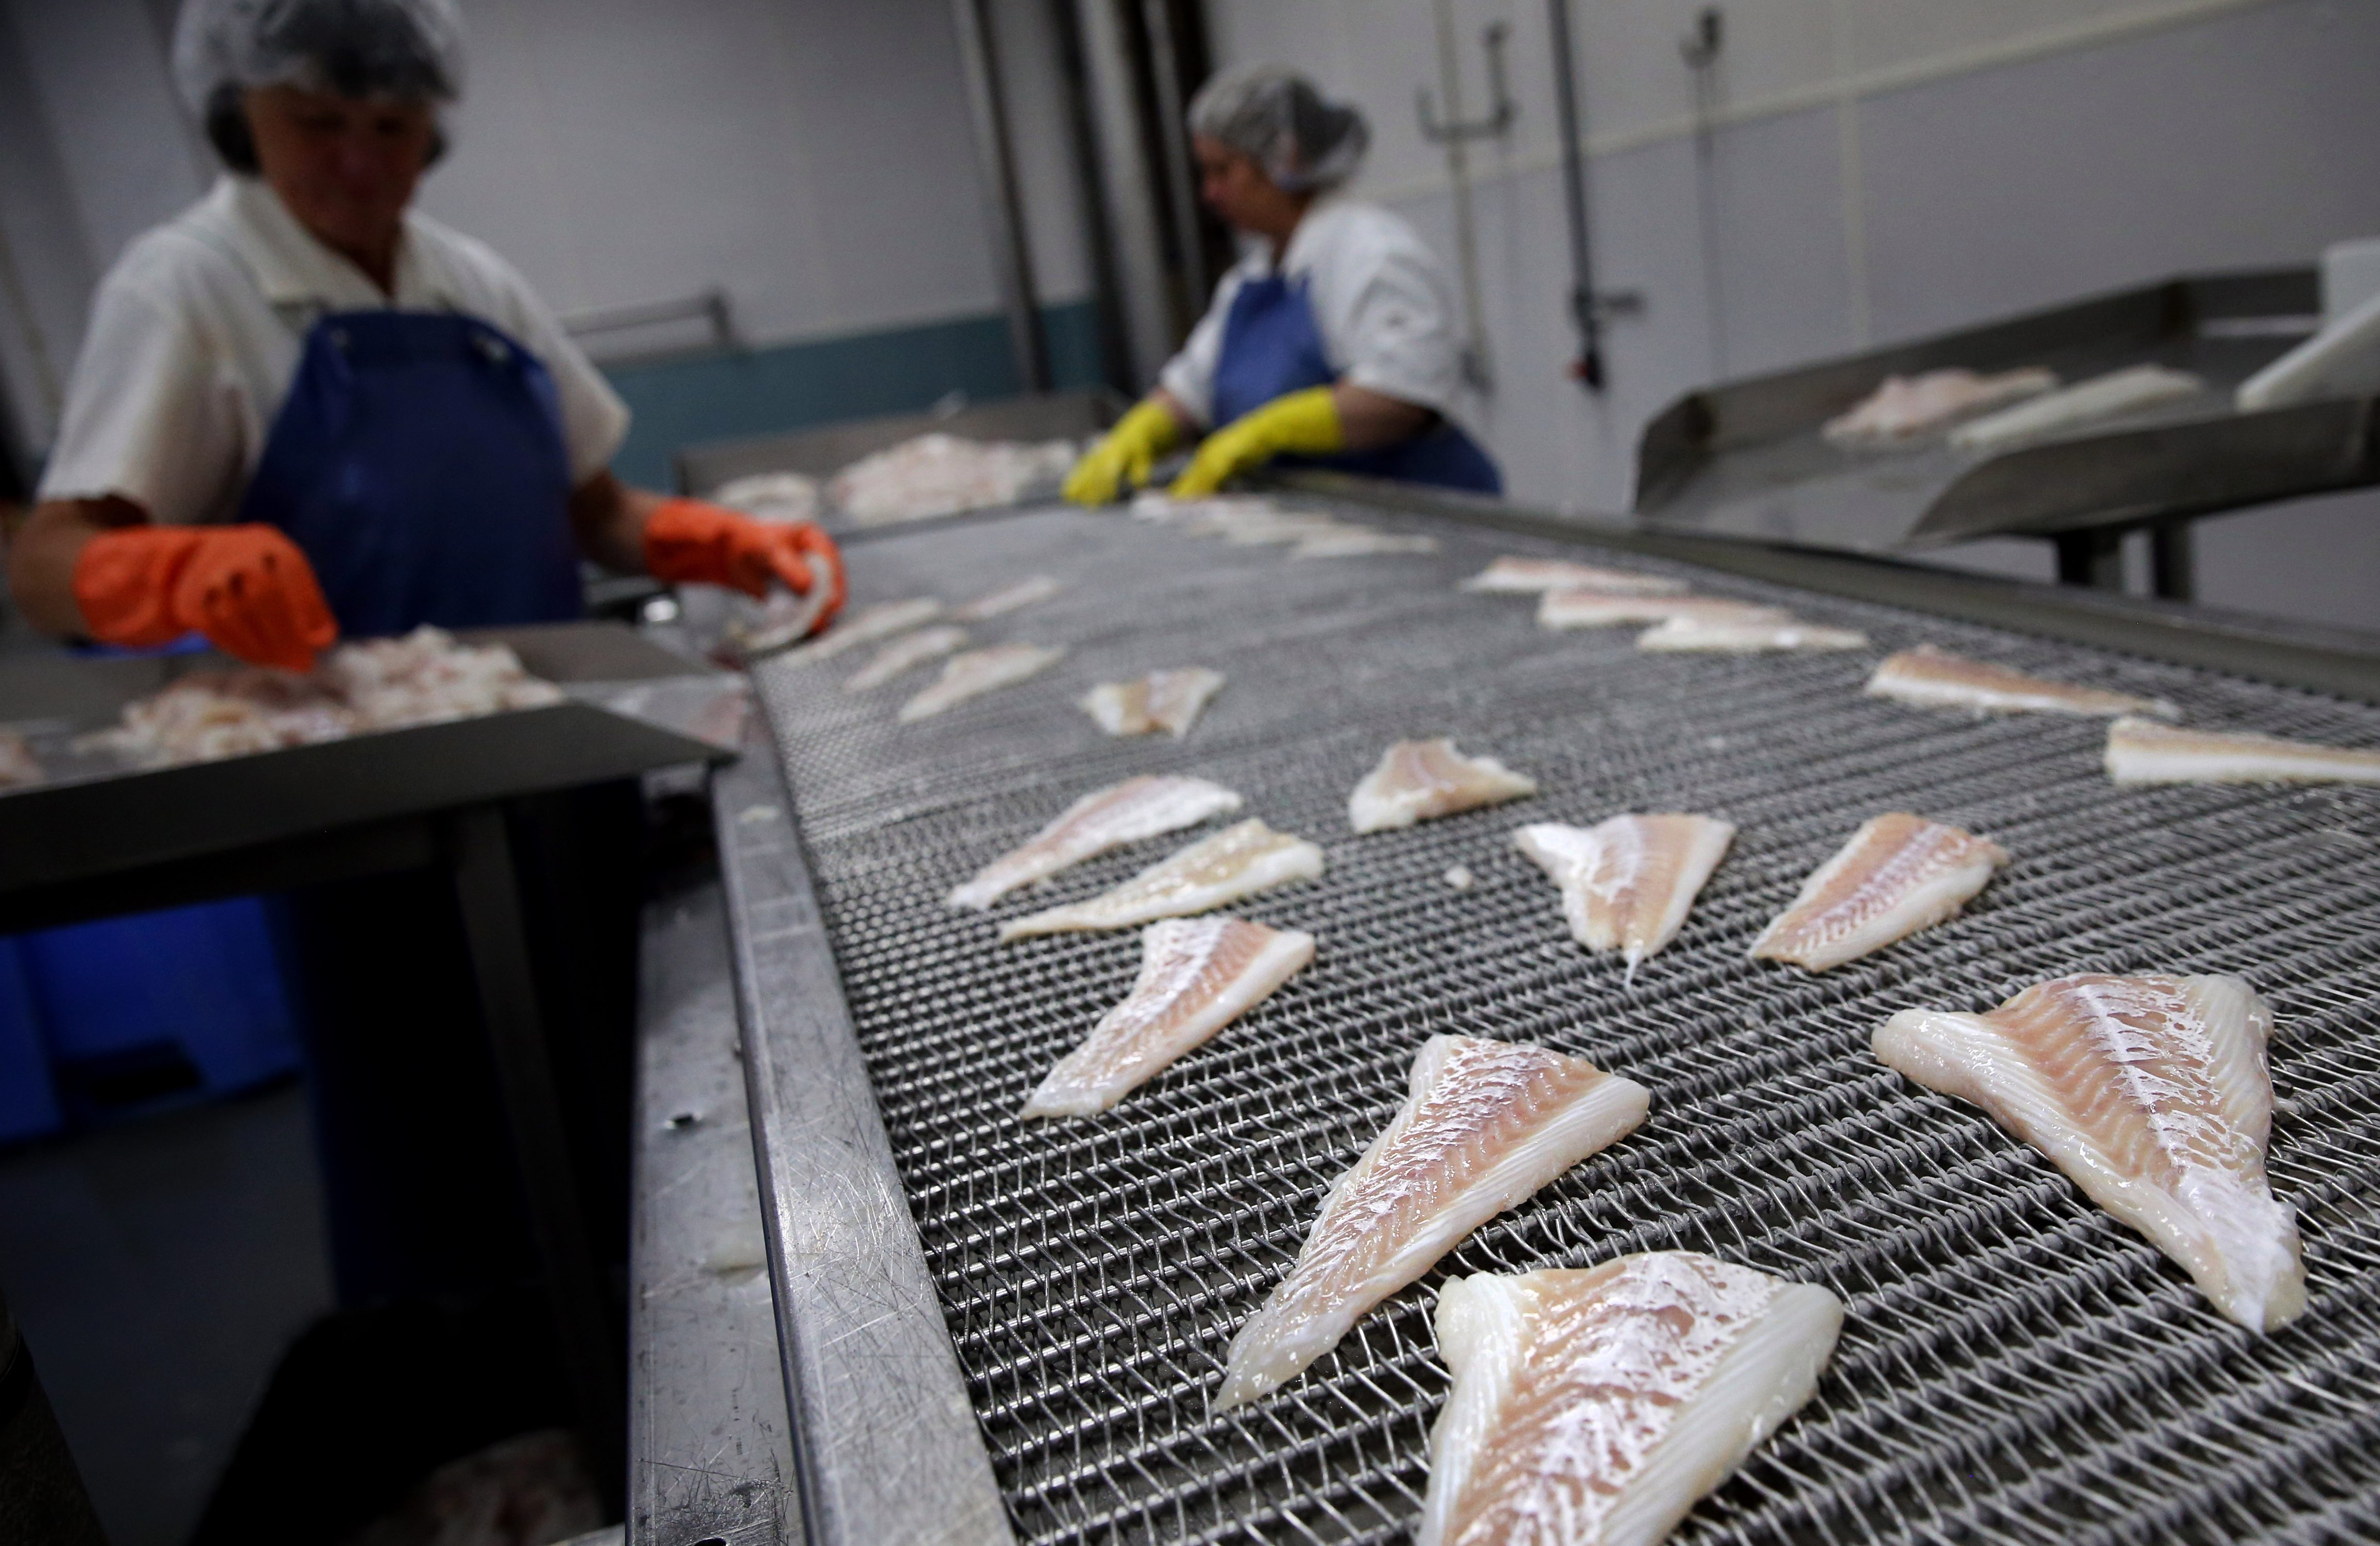 1: Fisherman Sam Lee hoists a cod from the water in Motion Bay. 2: Workers spread fillets onto a conveyor at the Icewater Seafood processing facility.